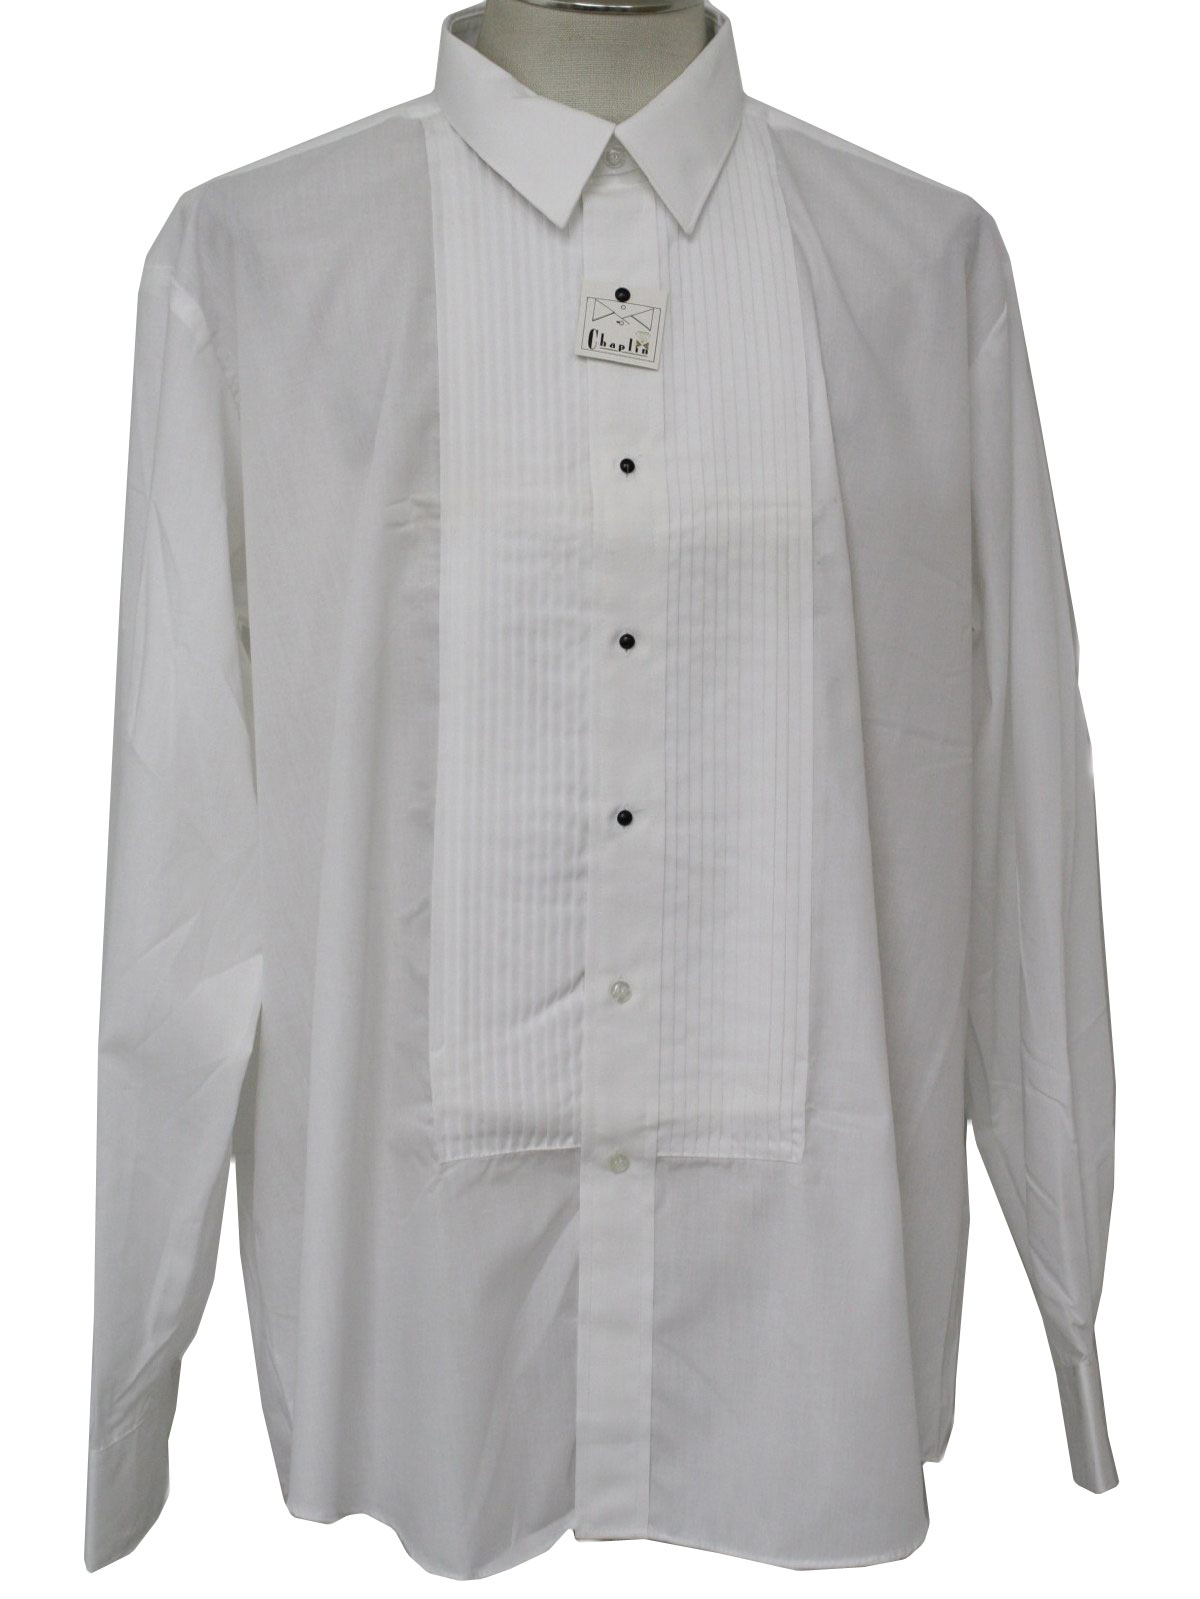 How many studs does a tuxedo shirt have for Tuxedo shirt no studs